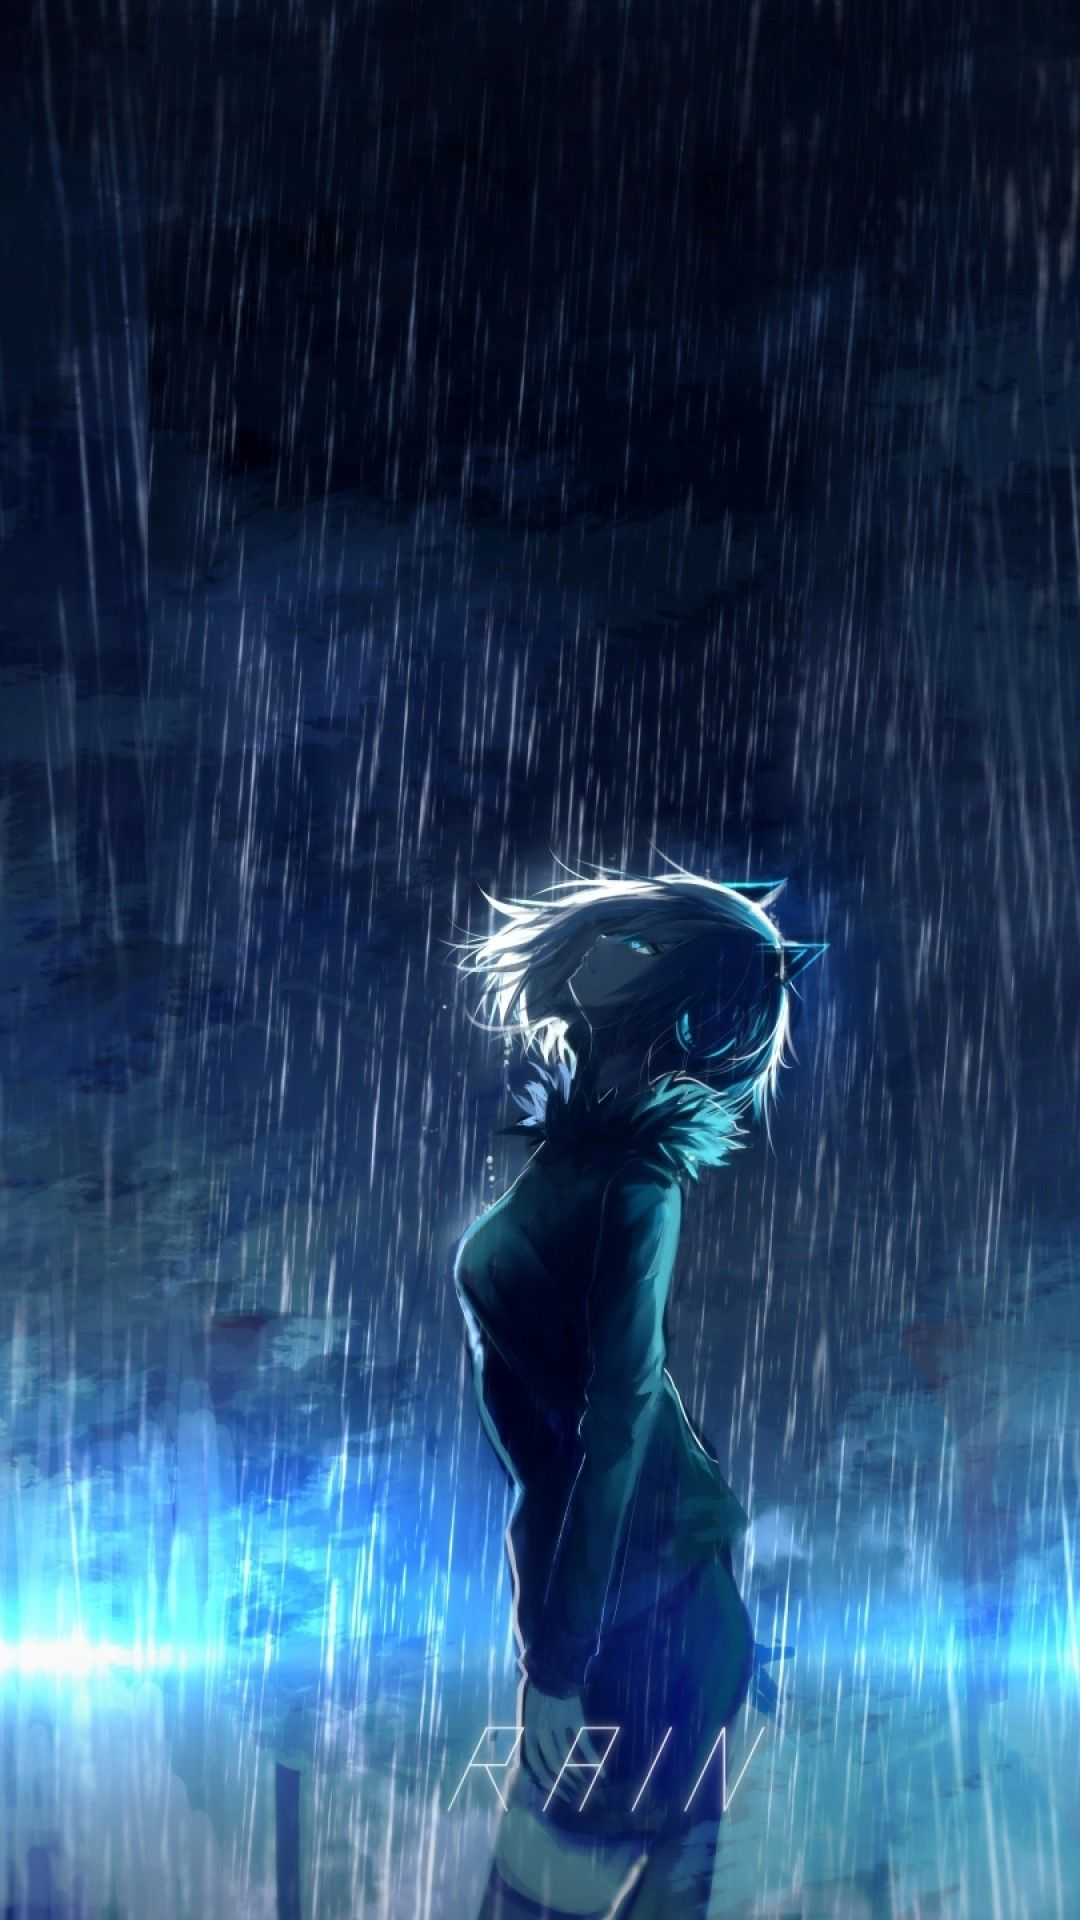 1080x1920 Anime Girl, Scenic, Raining, Animal Ears